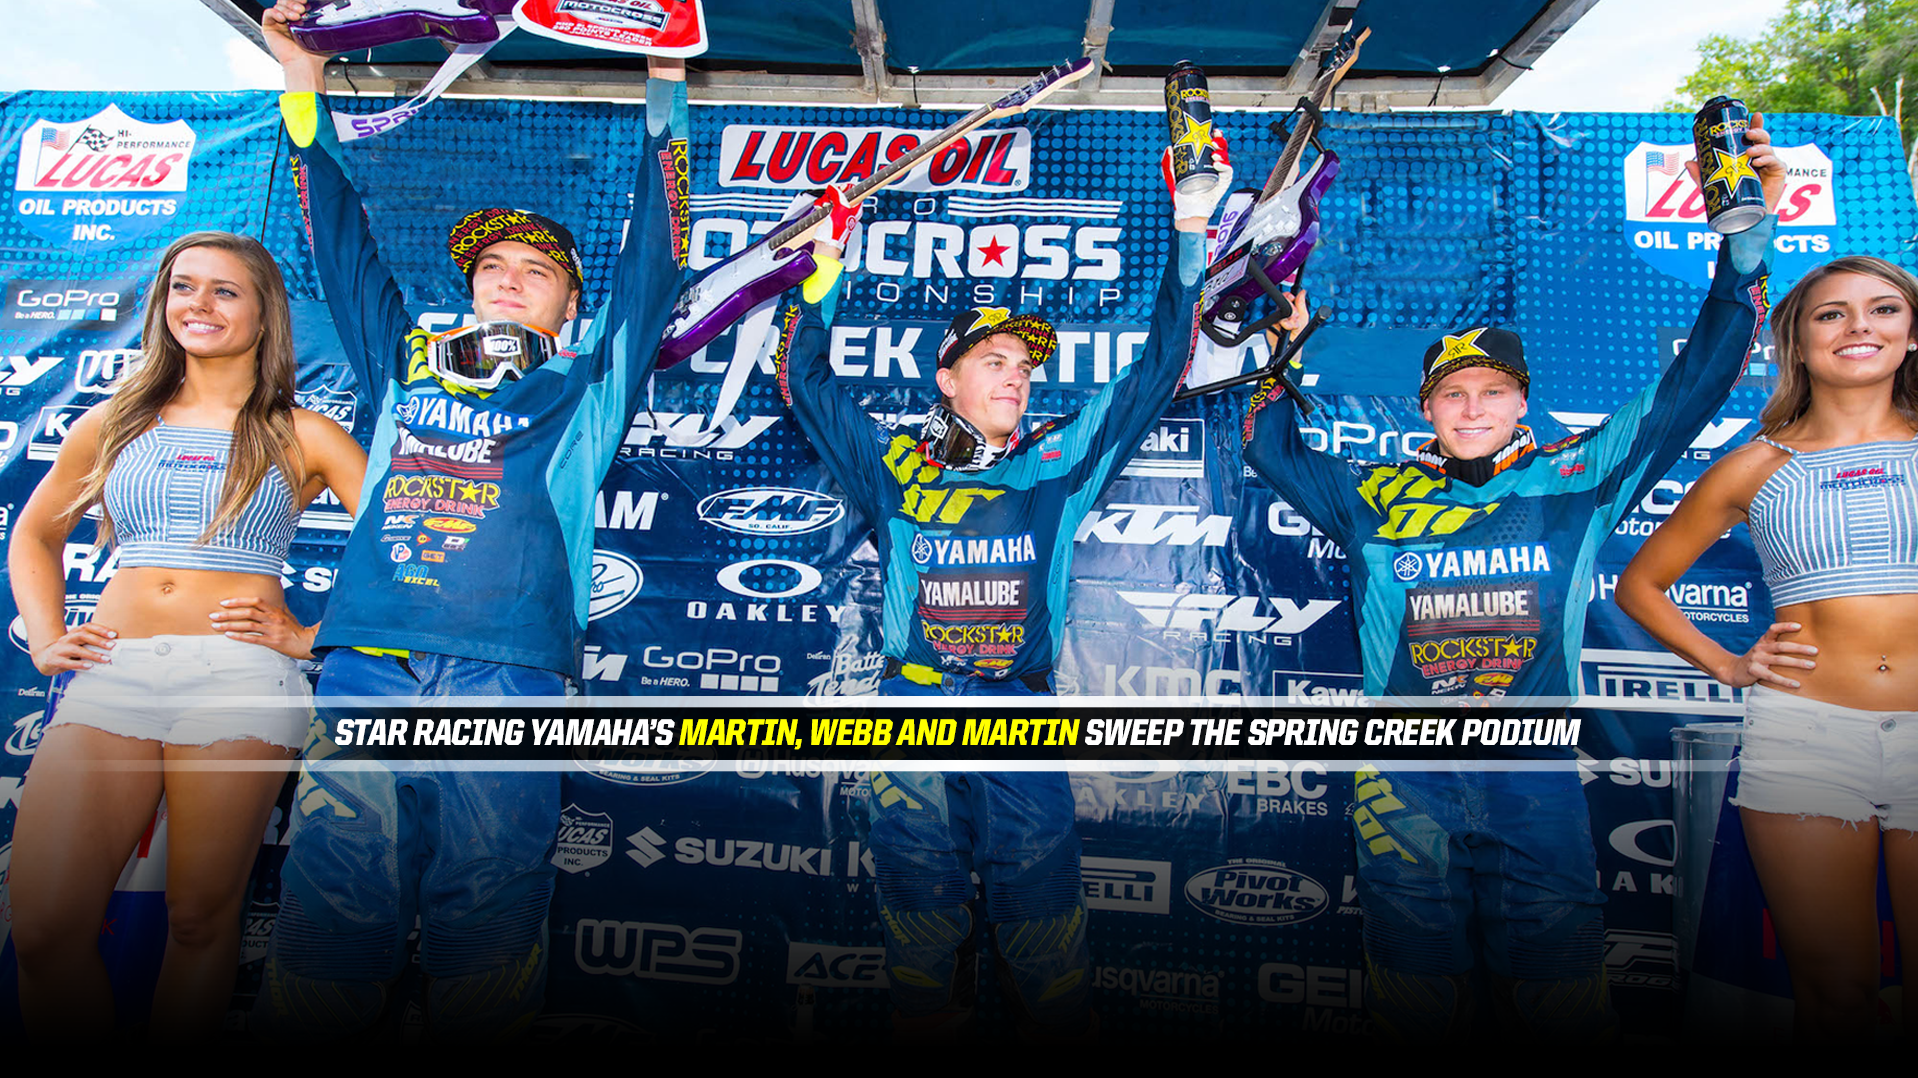 Star Racing Yamaha's Martin, Webb and Martin Sweep the Spring Creek Podium